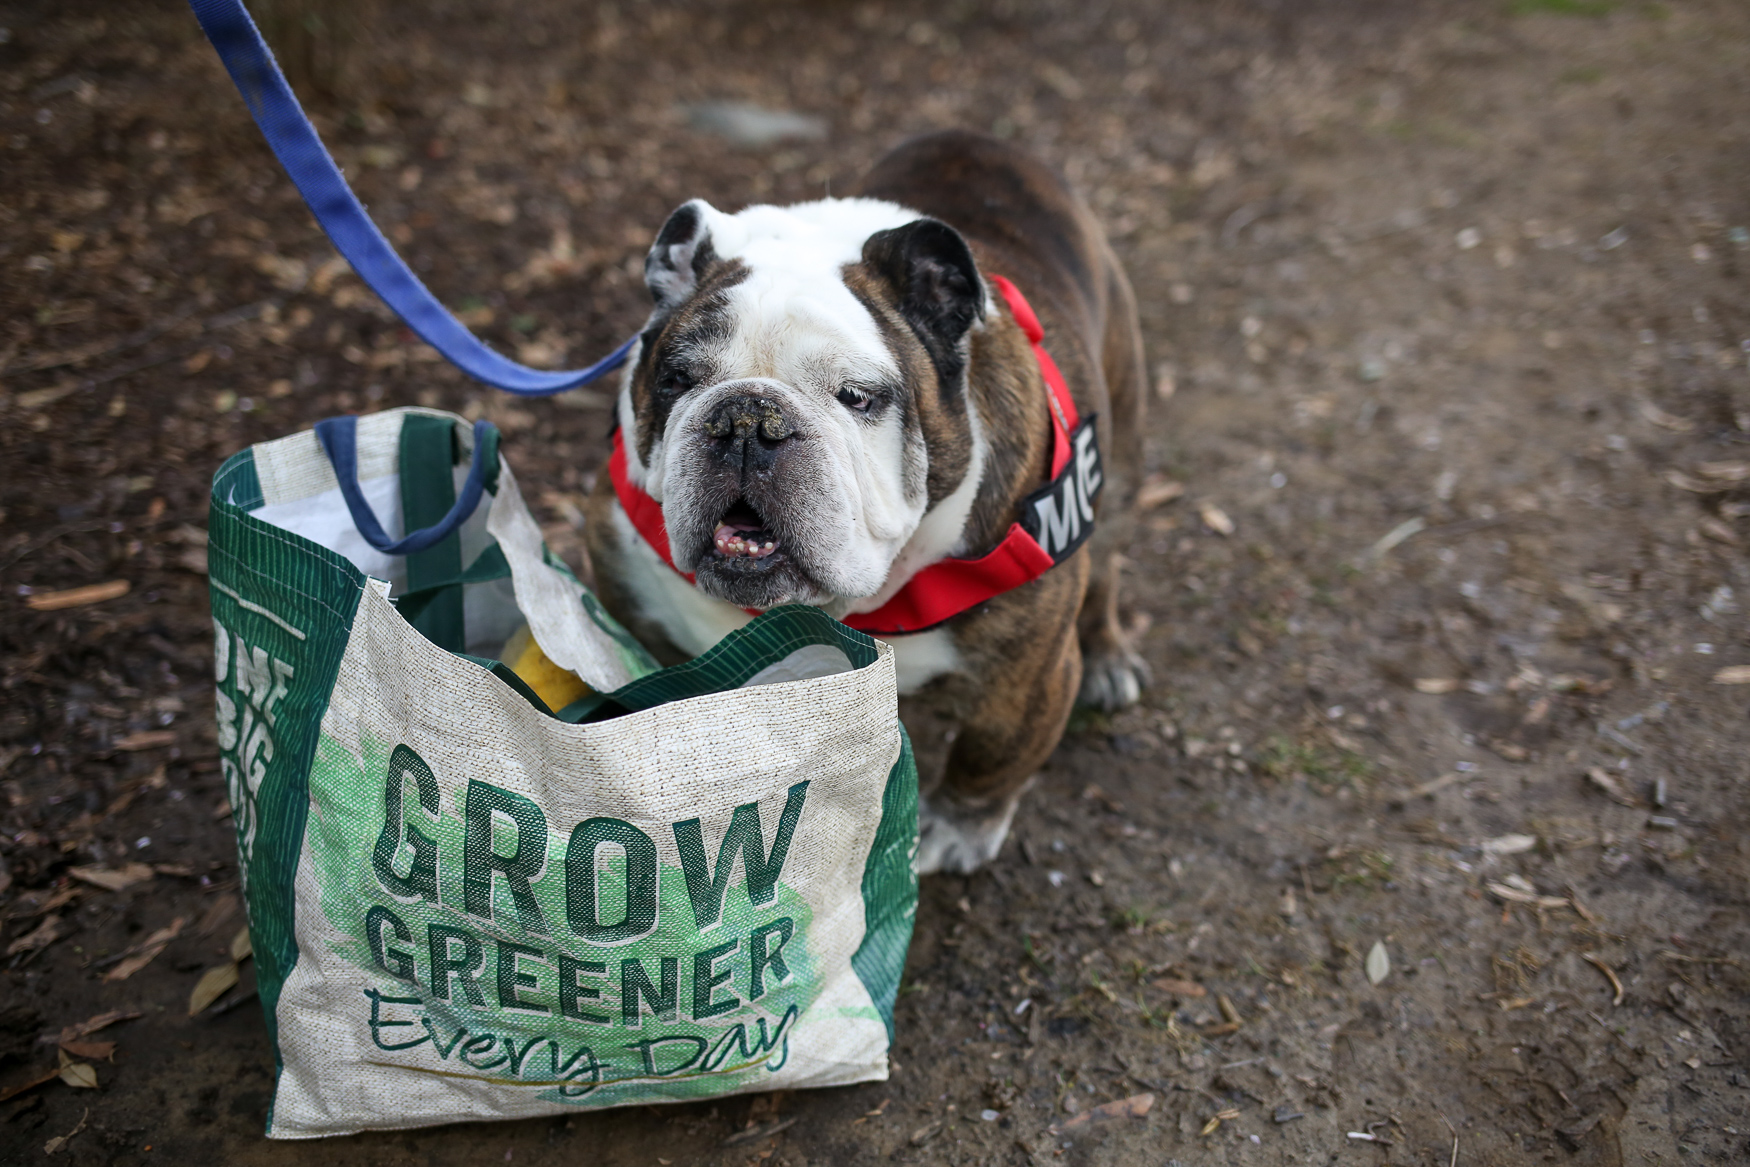 "Meet Moe, a 10-year-old English Bulldog, who was his pawrents' first dog! Moe was adopted in May 2014 from Lost Dog and Cat Rescue Foundation. He loves food (burgers and cheese are his favorites!), napping, the sunshine and ""helping"" mom ""unload"" groceries and Target hauls. Moe is such a diva that he has his own acupuncturist, Dr. Duffy, and he loves getting massages. While Moe enjoys cold weather, he is not a fan at all of snow, getting up early, rain, umbrellas, hats/crazy headbands and anything mint flavored. He also enjoys ""singing"" along to the music played by his mom's piano students, and at Christmas time, he will lay under the tree all season long. If you're interested in having your pup featured, drop us a line at aandrade@dcrefined.com (Image: Amanda Andrade-Rhoades/DC Refined)"